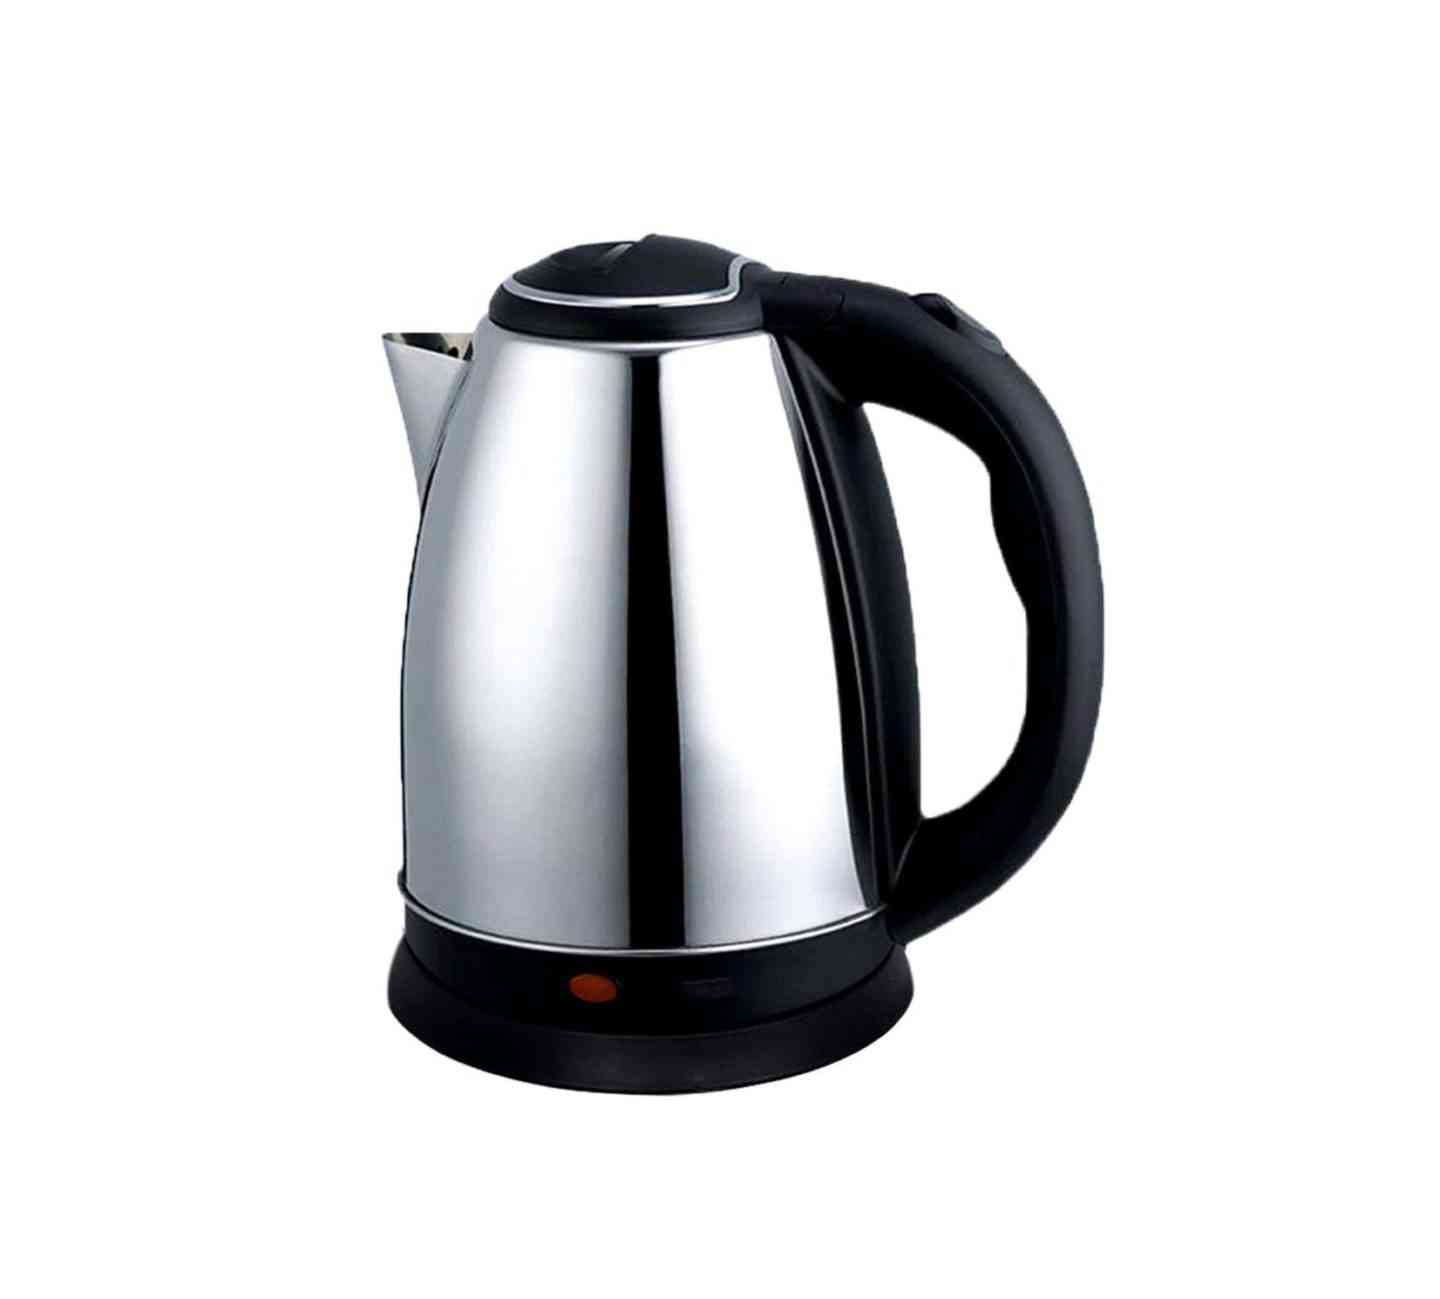 Kawashi Electric Kettle 1.8L: Buy Sell Online @ Best Prices in ...